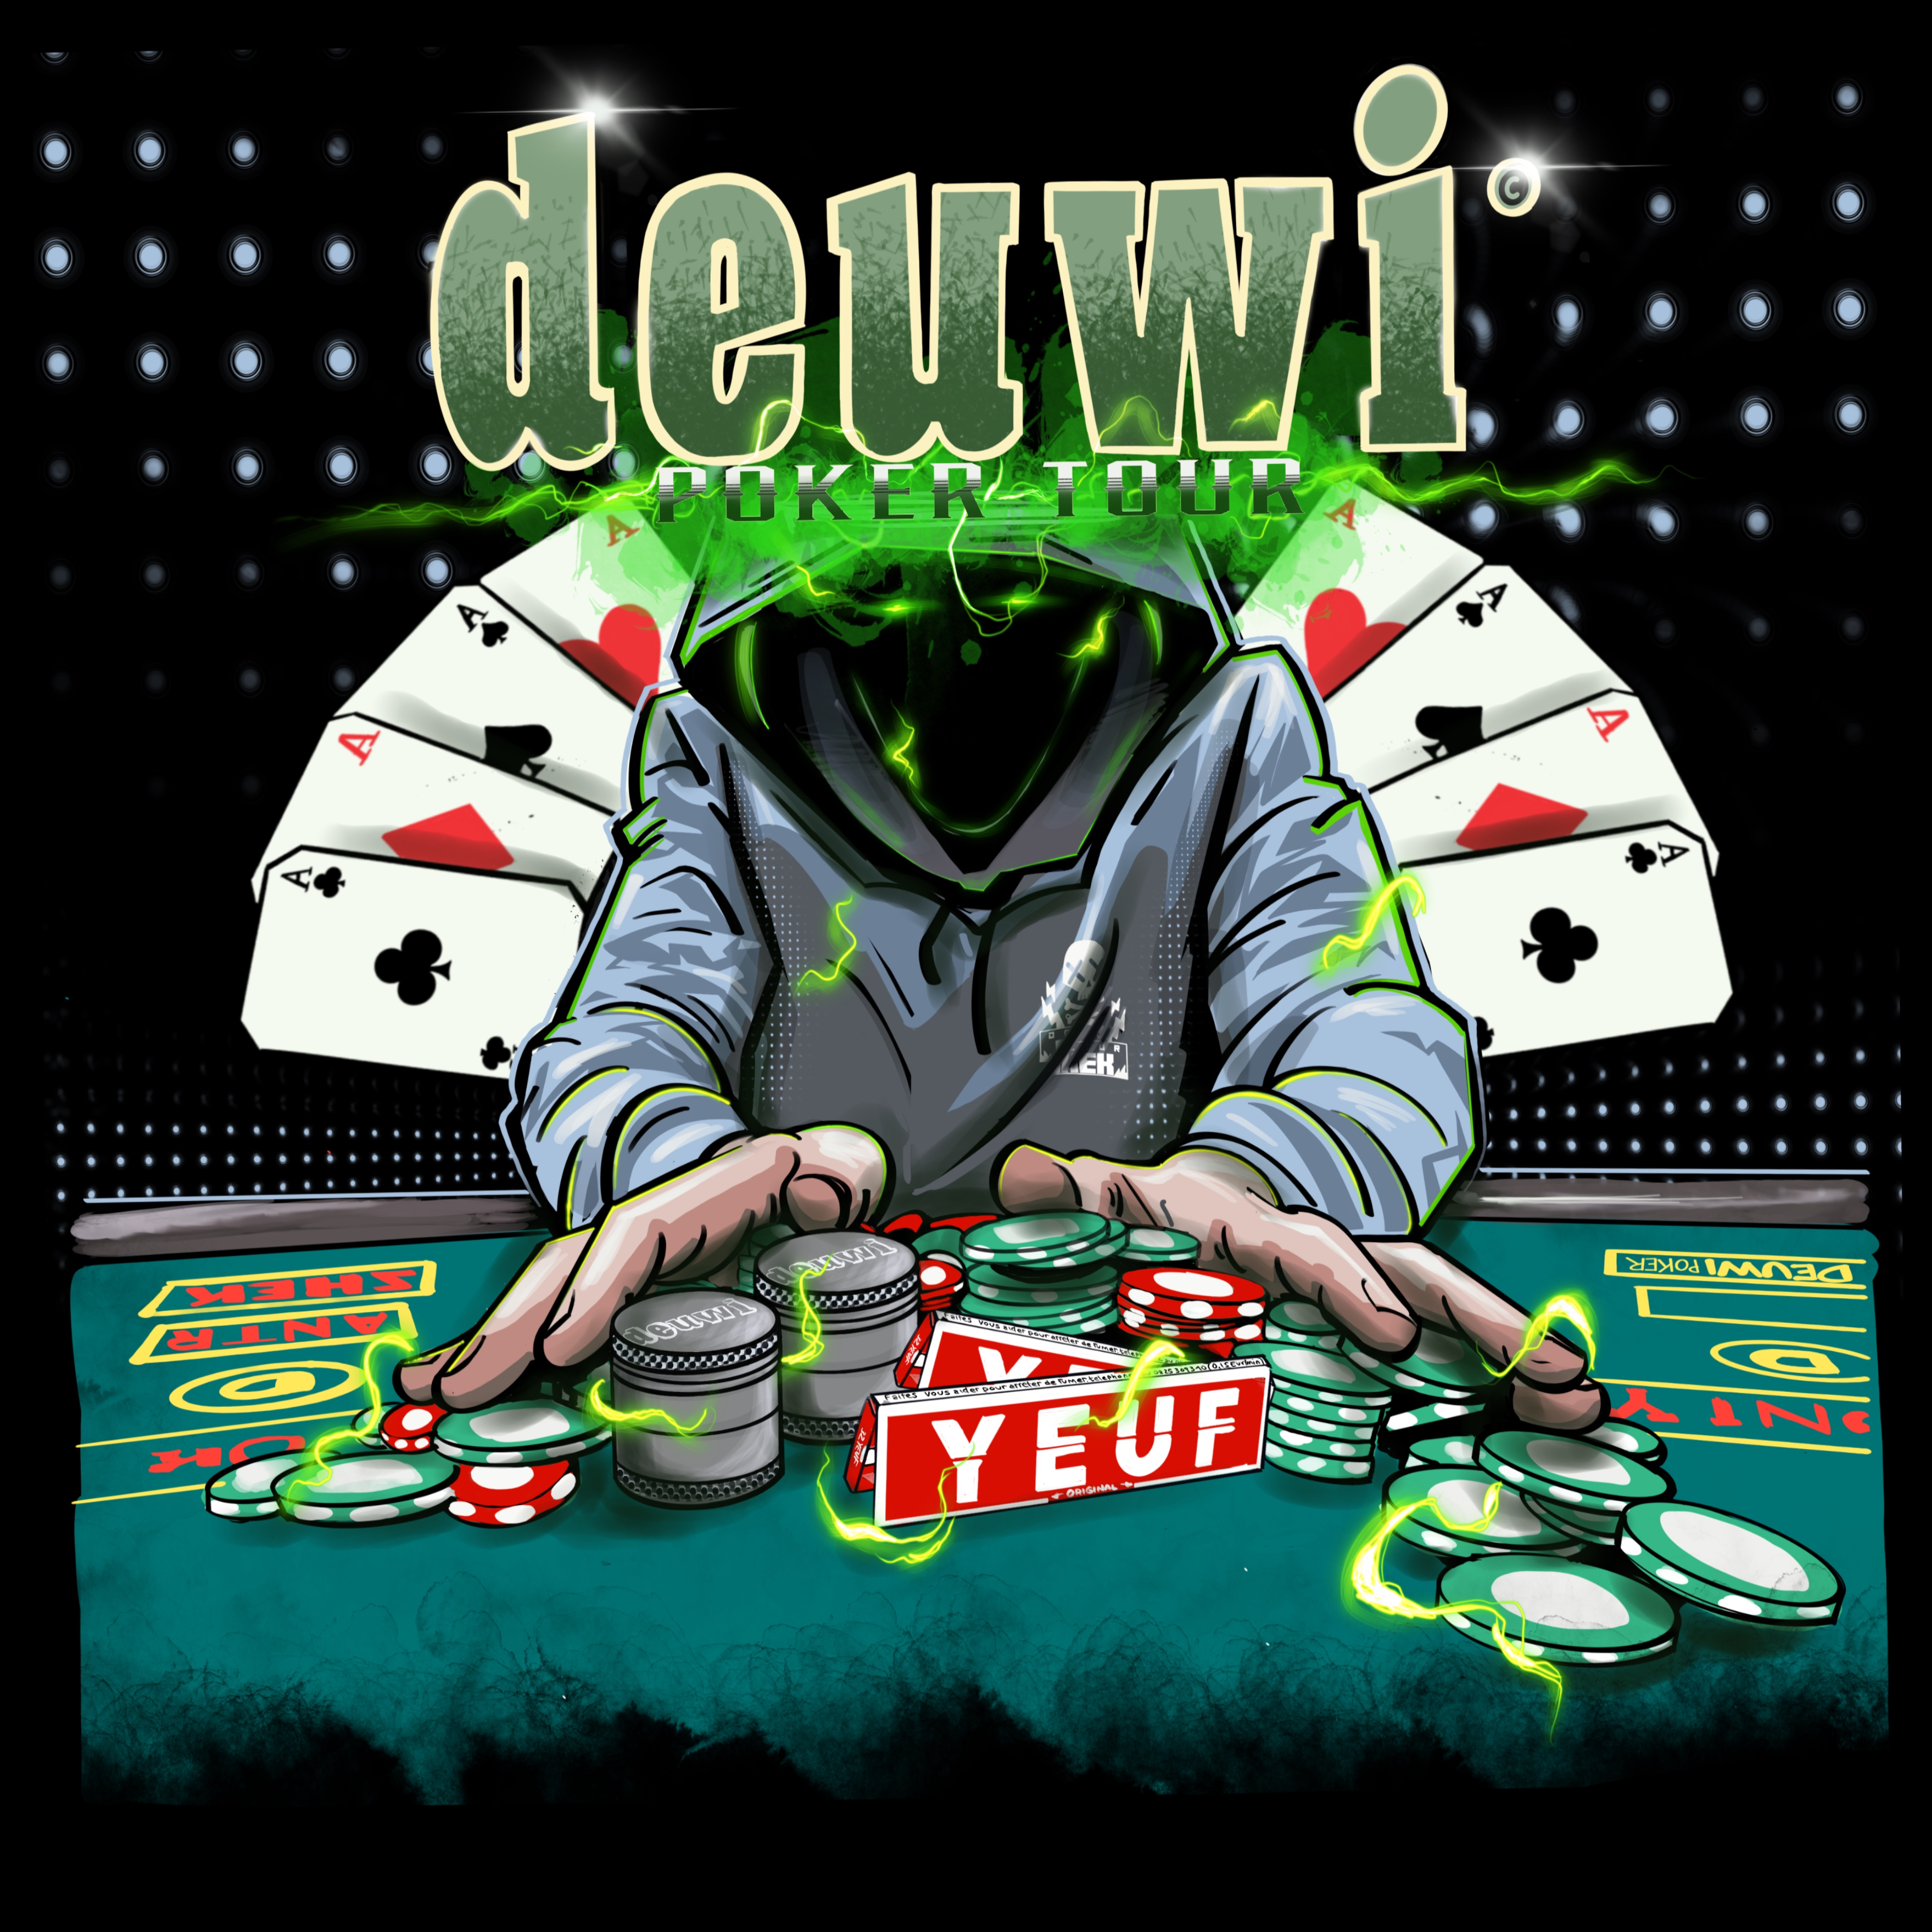 DEUWI POKER TOUR